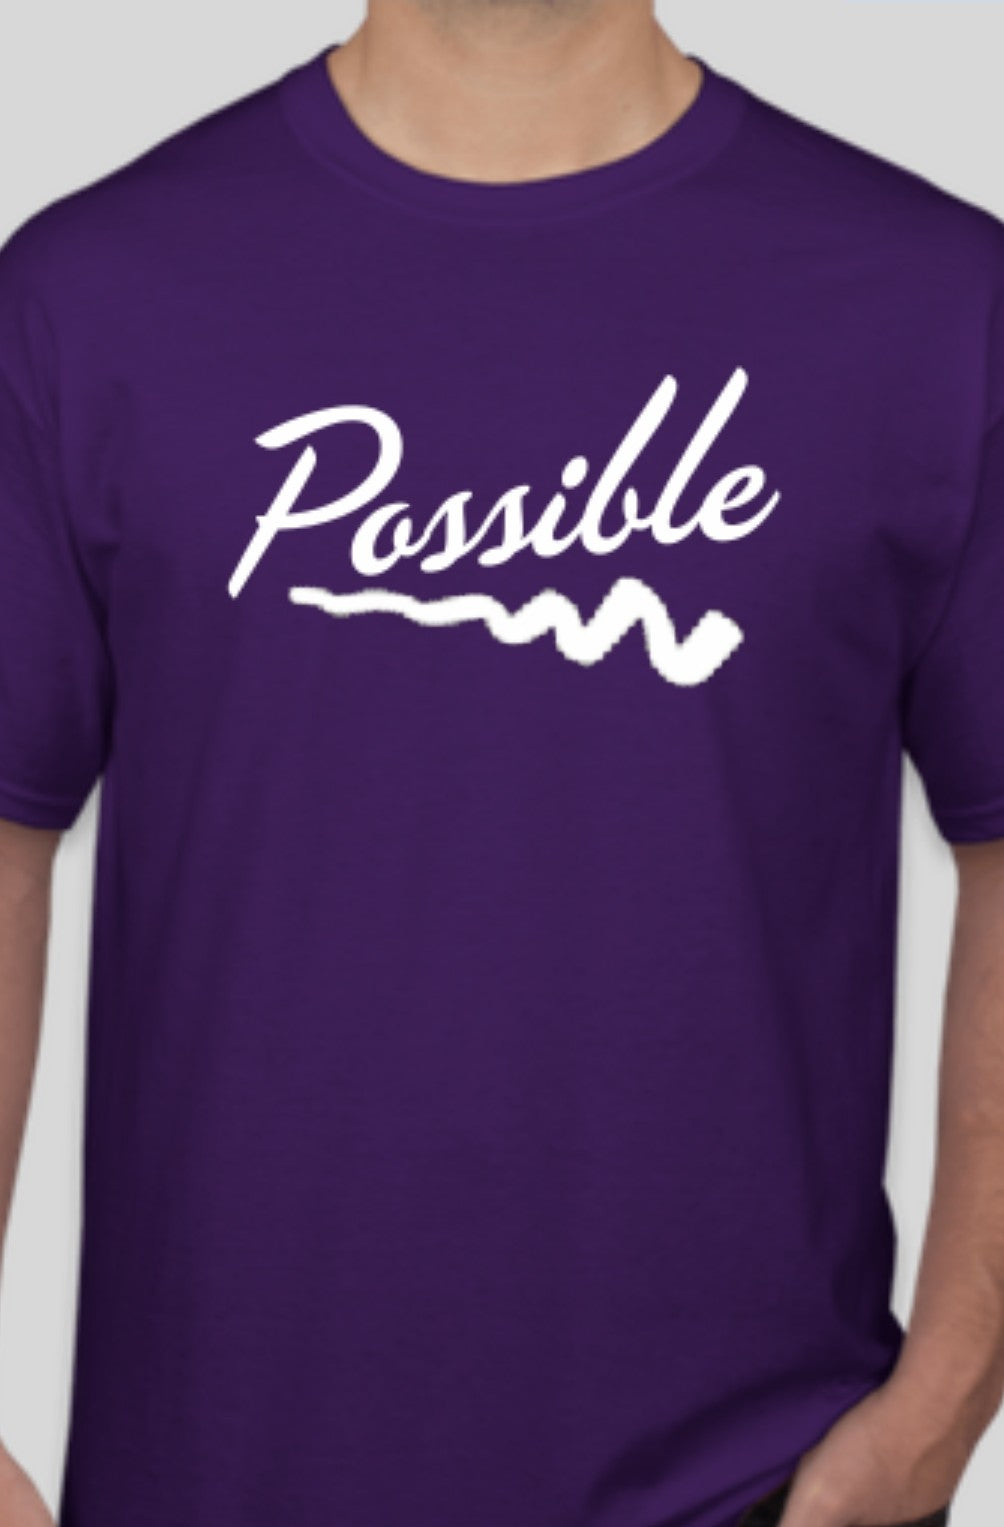 Possible Purple T-shirt